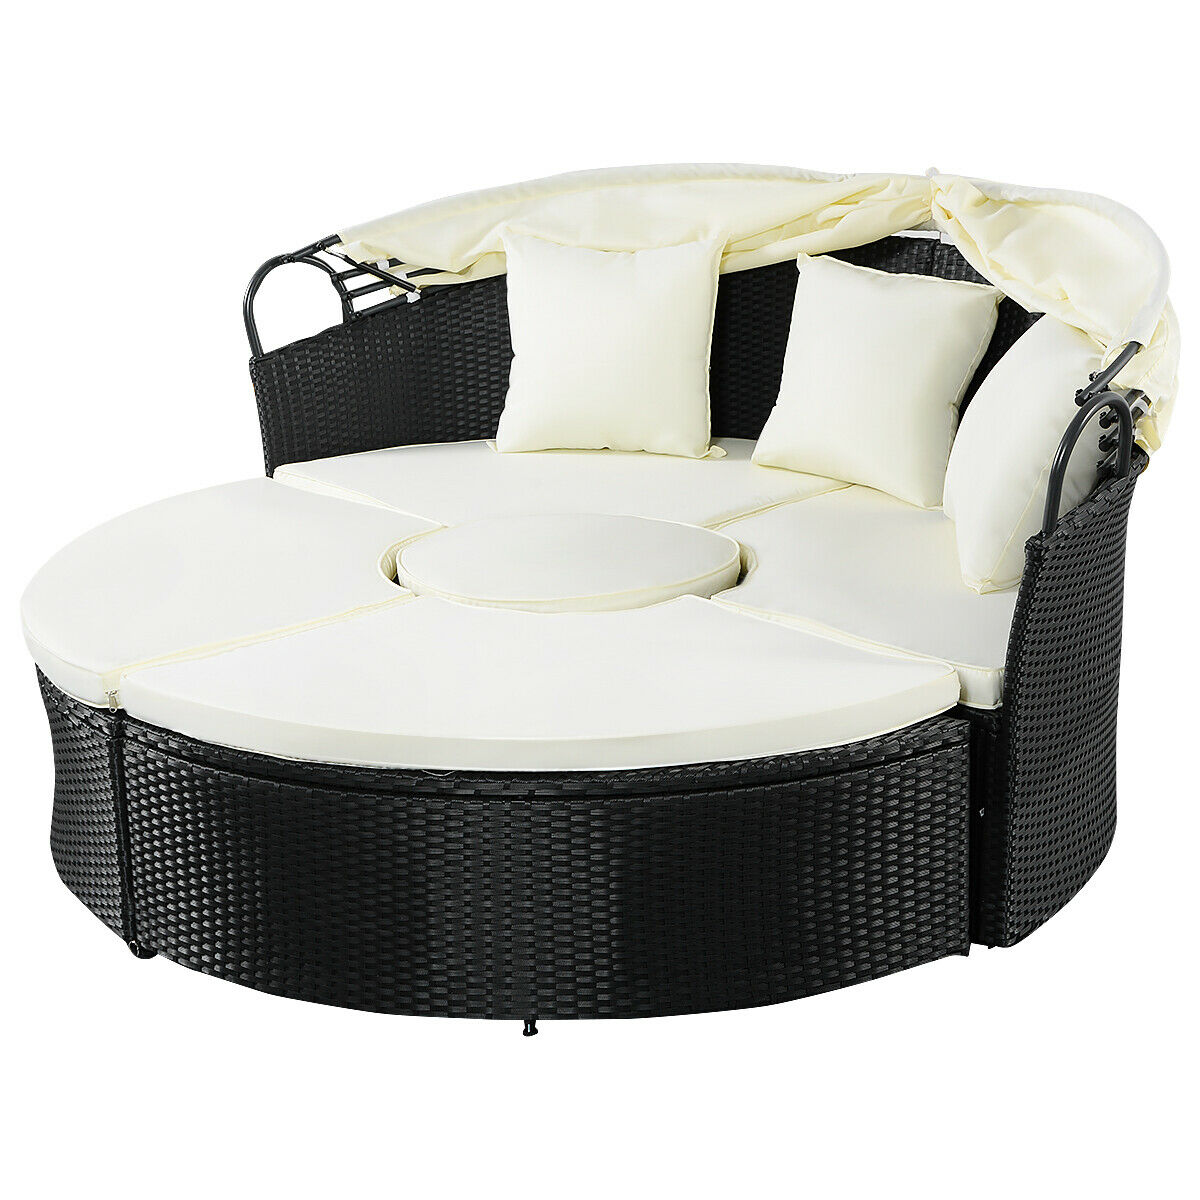 Gymax Rattan Wicker Round Retractable Canopy Daybed Sofa Furniture Set Outdoor Patio - image 3 of 9